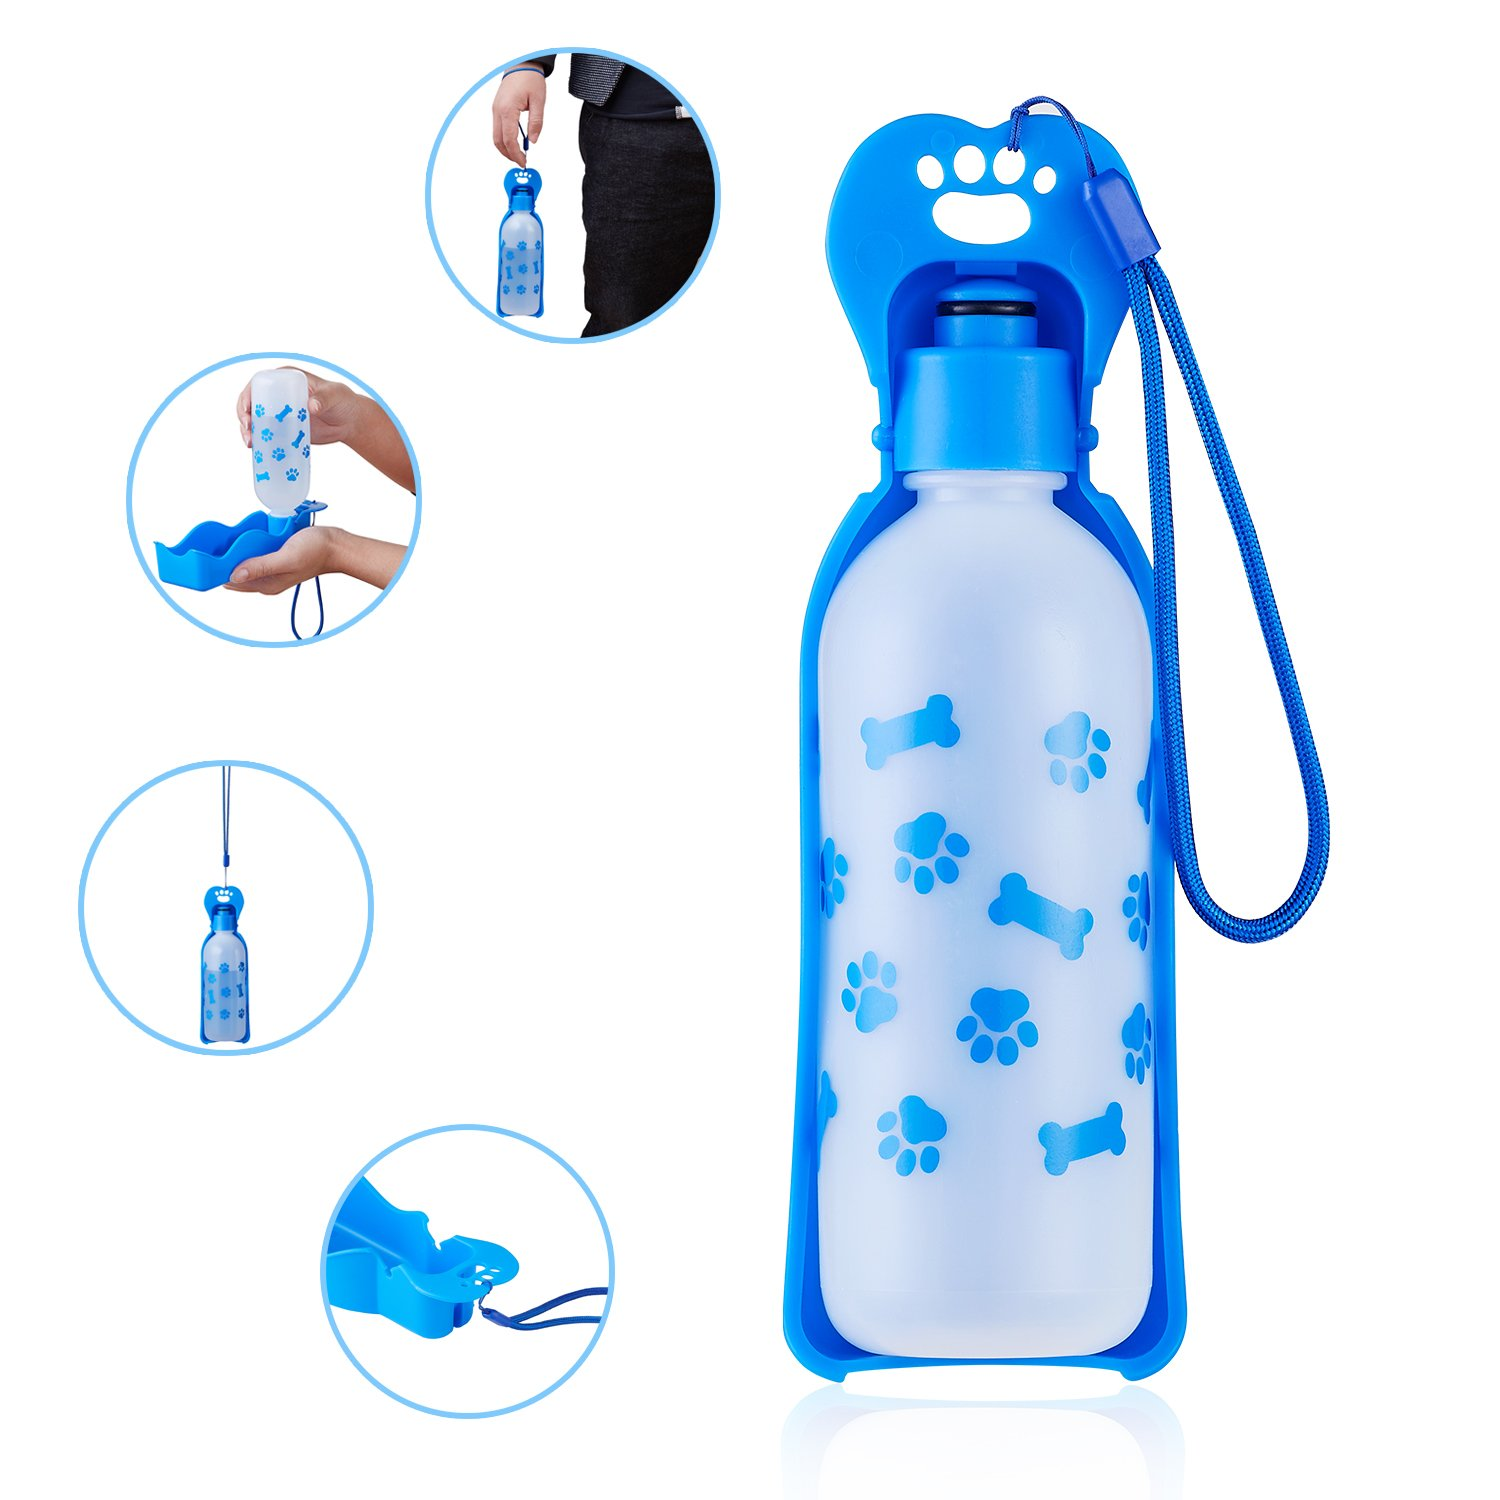 ANPETBEST Travel Water Bottle 325ML/11oz Water Dispenser Portable Mug for Dogs,Cats and Other Small Animals by ANPETBEST (Image #5)